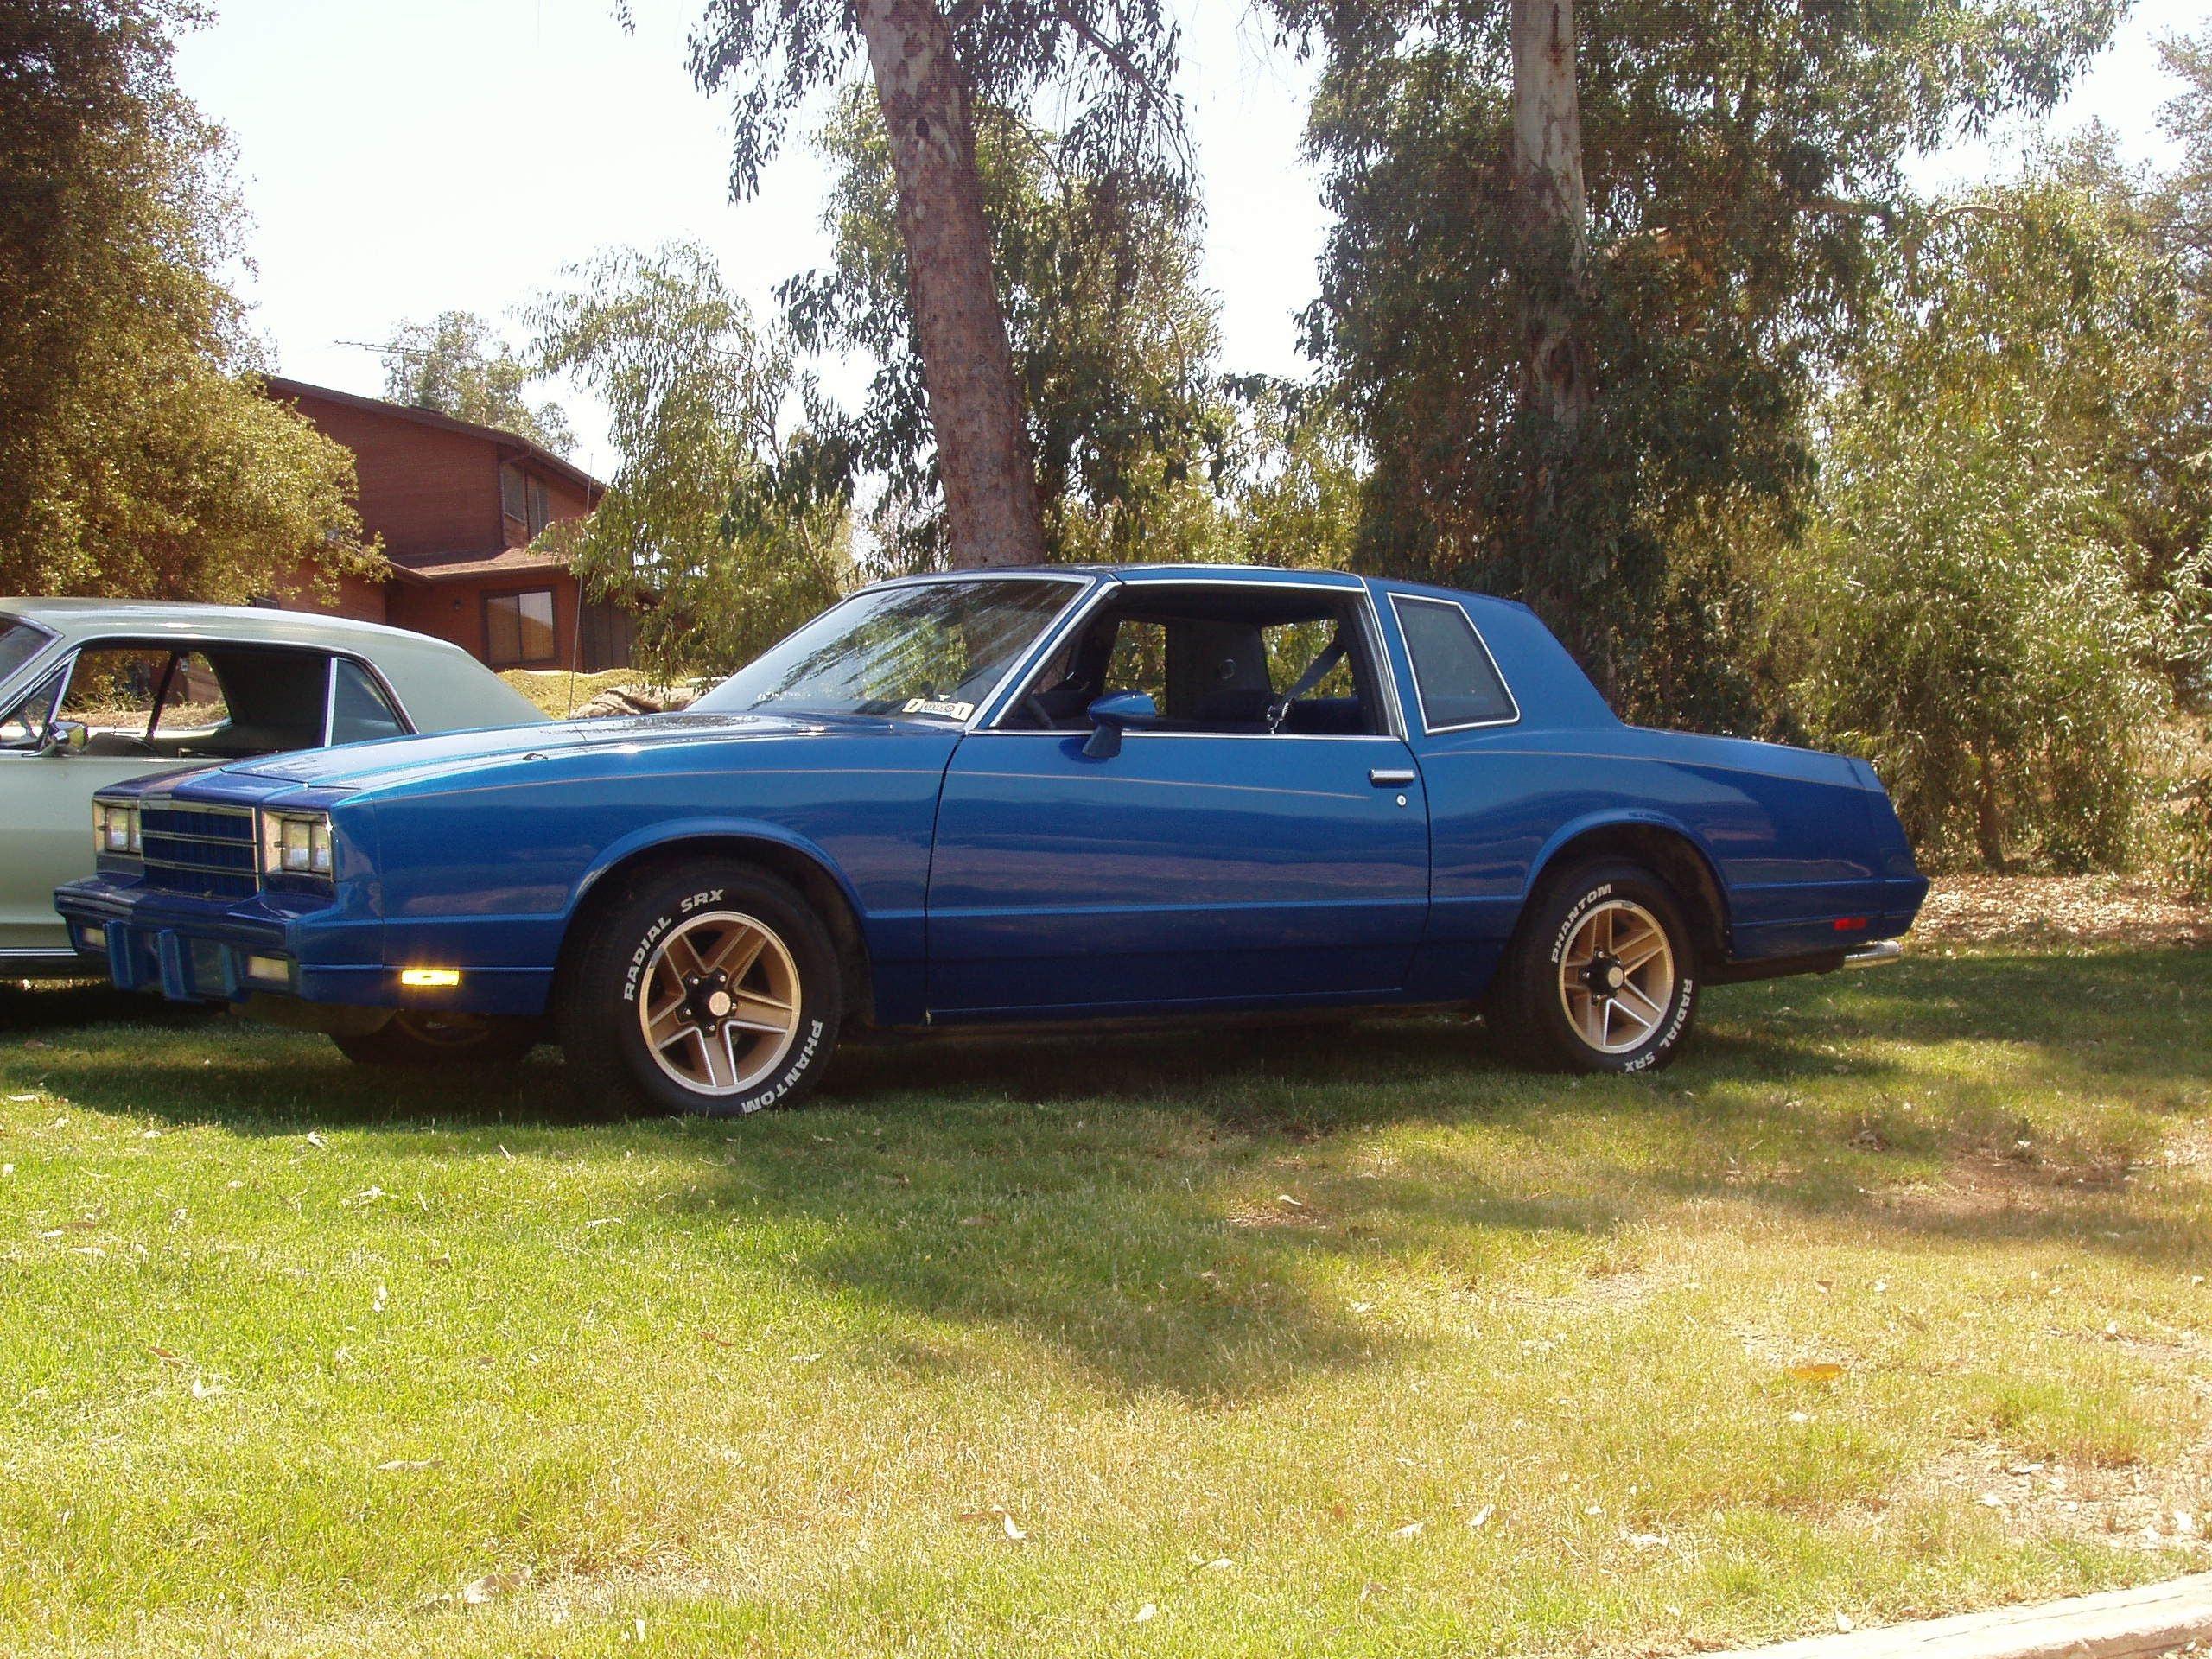 184 best MonteCarlos images on Pinterest  Chevrolet monte carlo